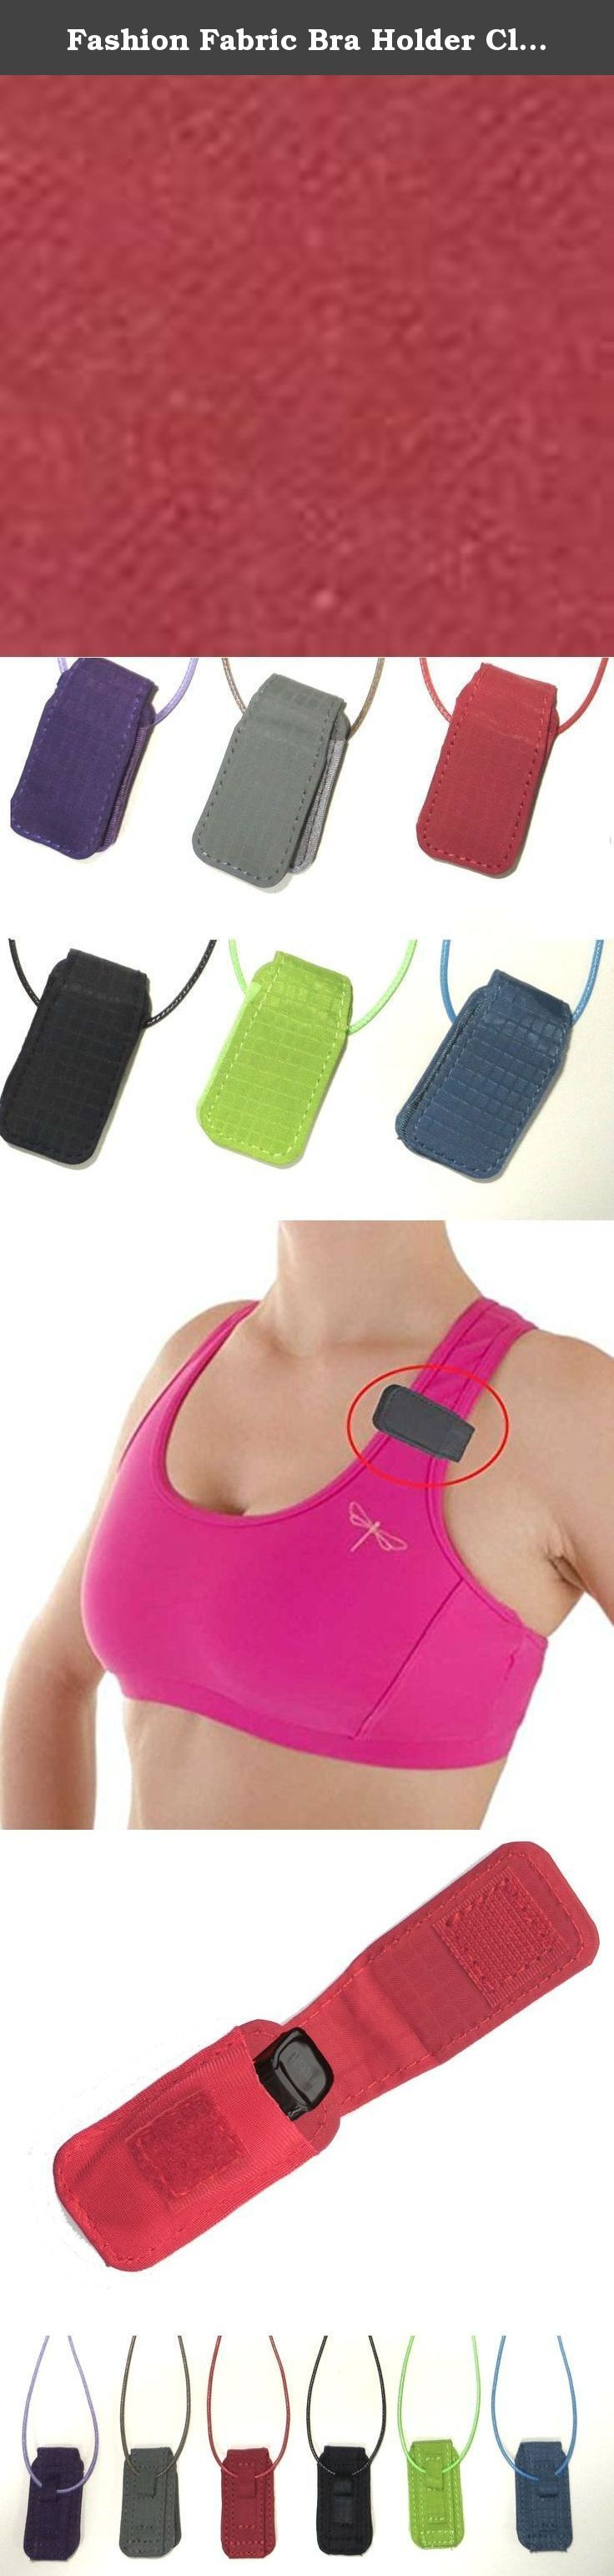 Fashion Fabric Bra Holder Clip for Misfit Shine Flash- Activity and Sleep Monitor (red, BRA HOLDER). An alternative to the LEATHER STRAP WRISTBAND, sleep band, wristband, clip, plastic holder, convenient to use.